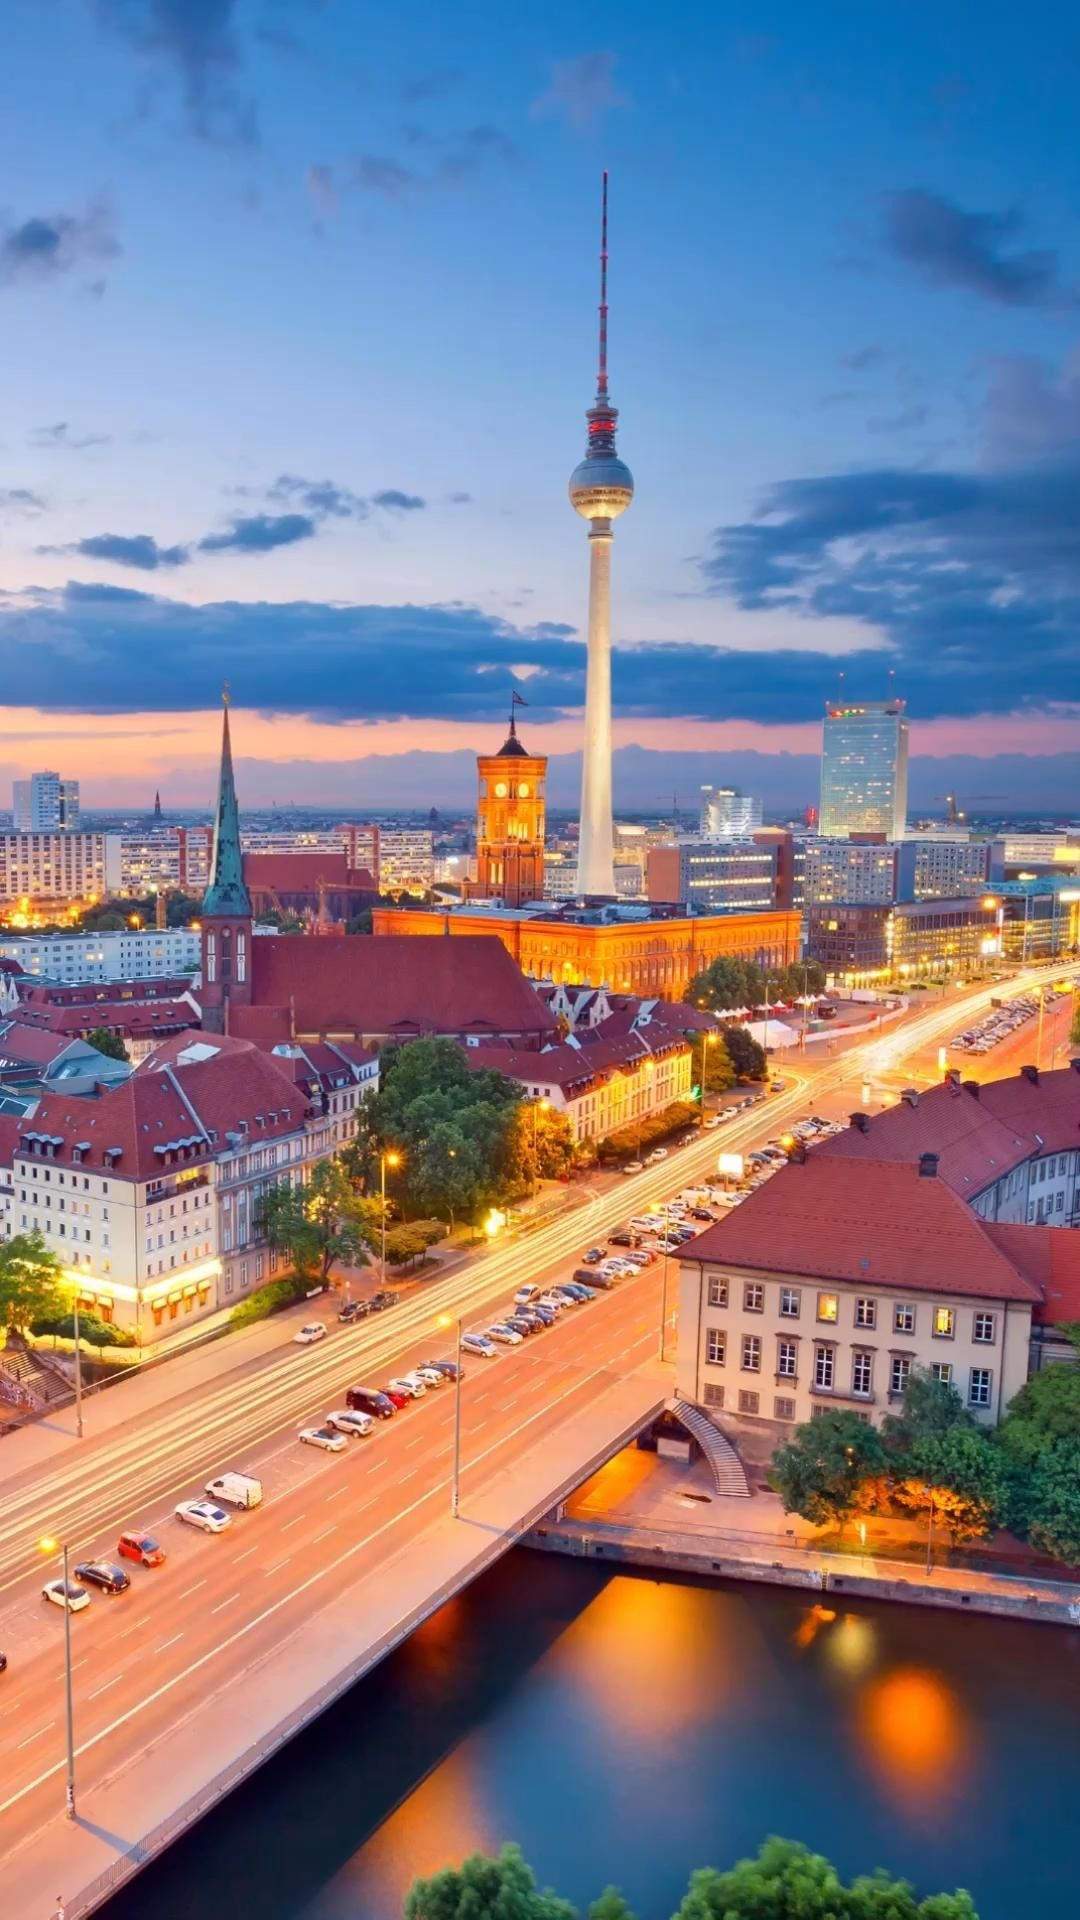 Travel to the German capital, including tons of things to do and see. Check out the attractions, food, neighborhoods, and more in the heart of Europe! #germany #berlin #europetravel #berlintravel #germanytravel #travel #traveltips